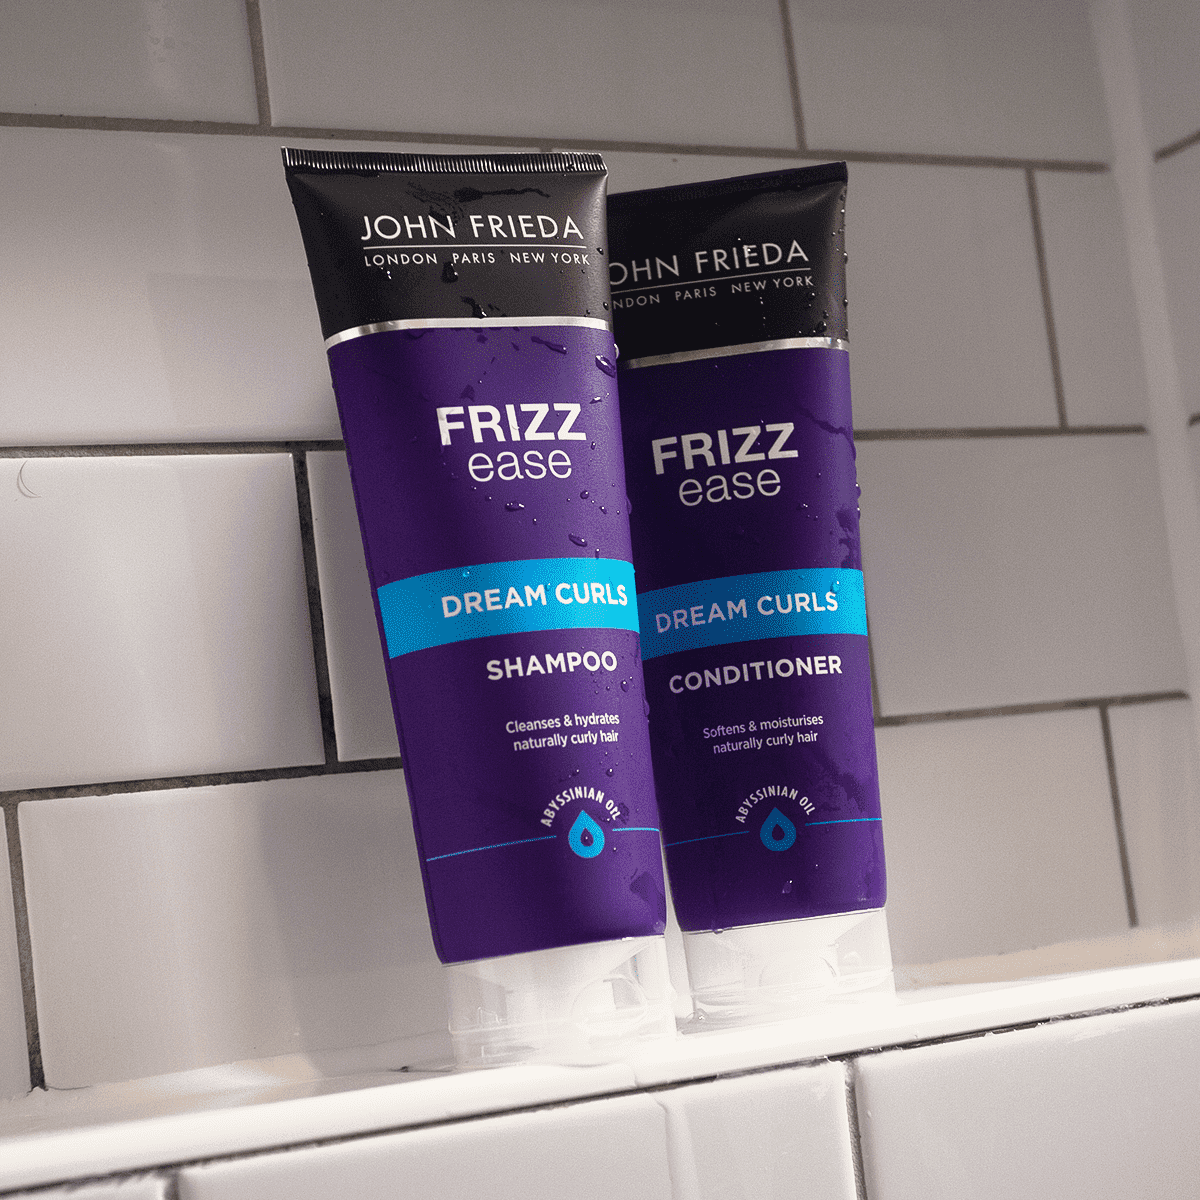 John Frieda Frizz Ease Dream Curls Shampoo and Conditioner on a bathroom shelf